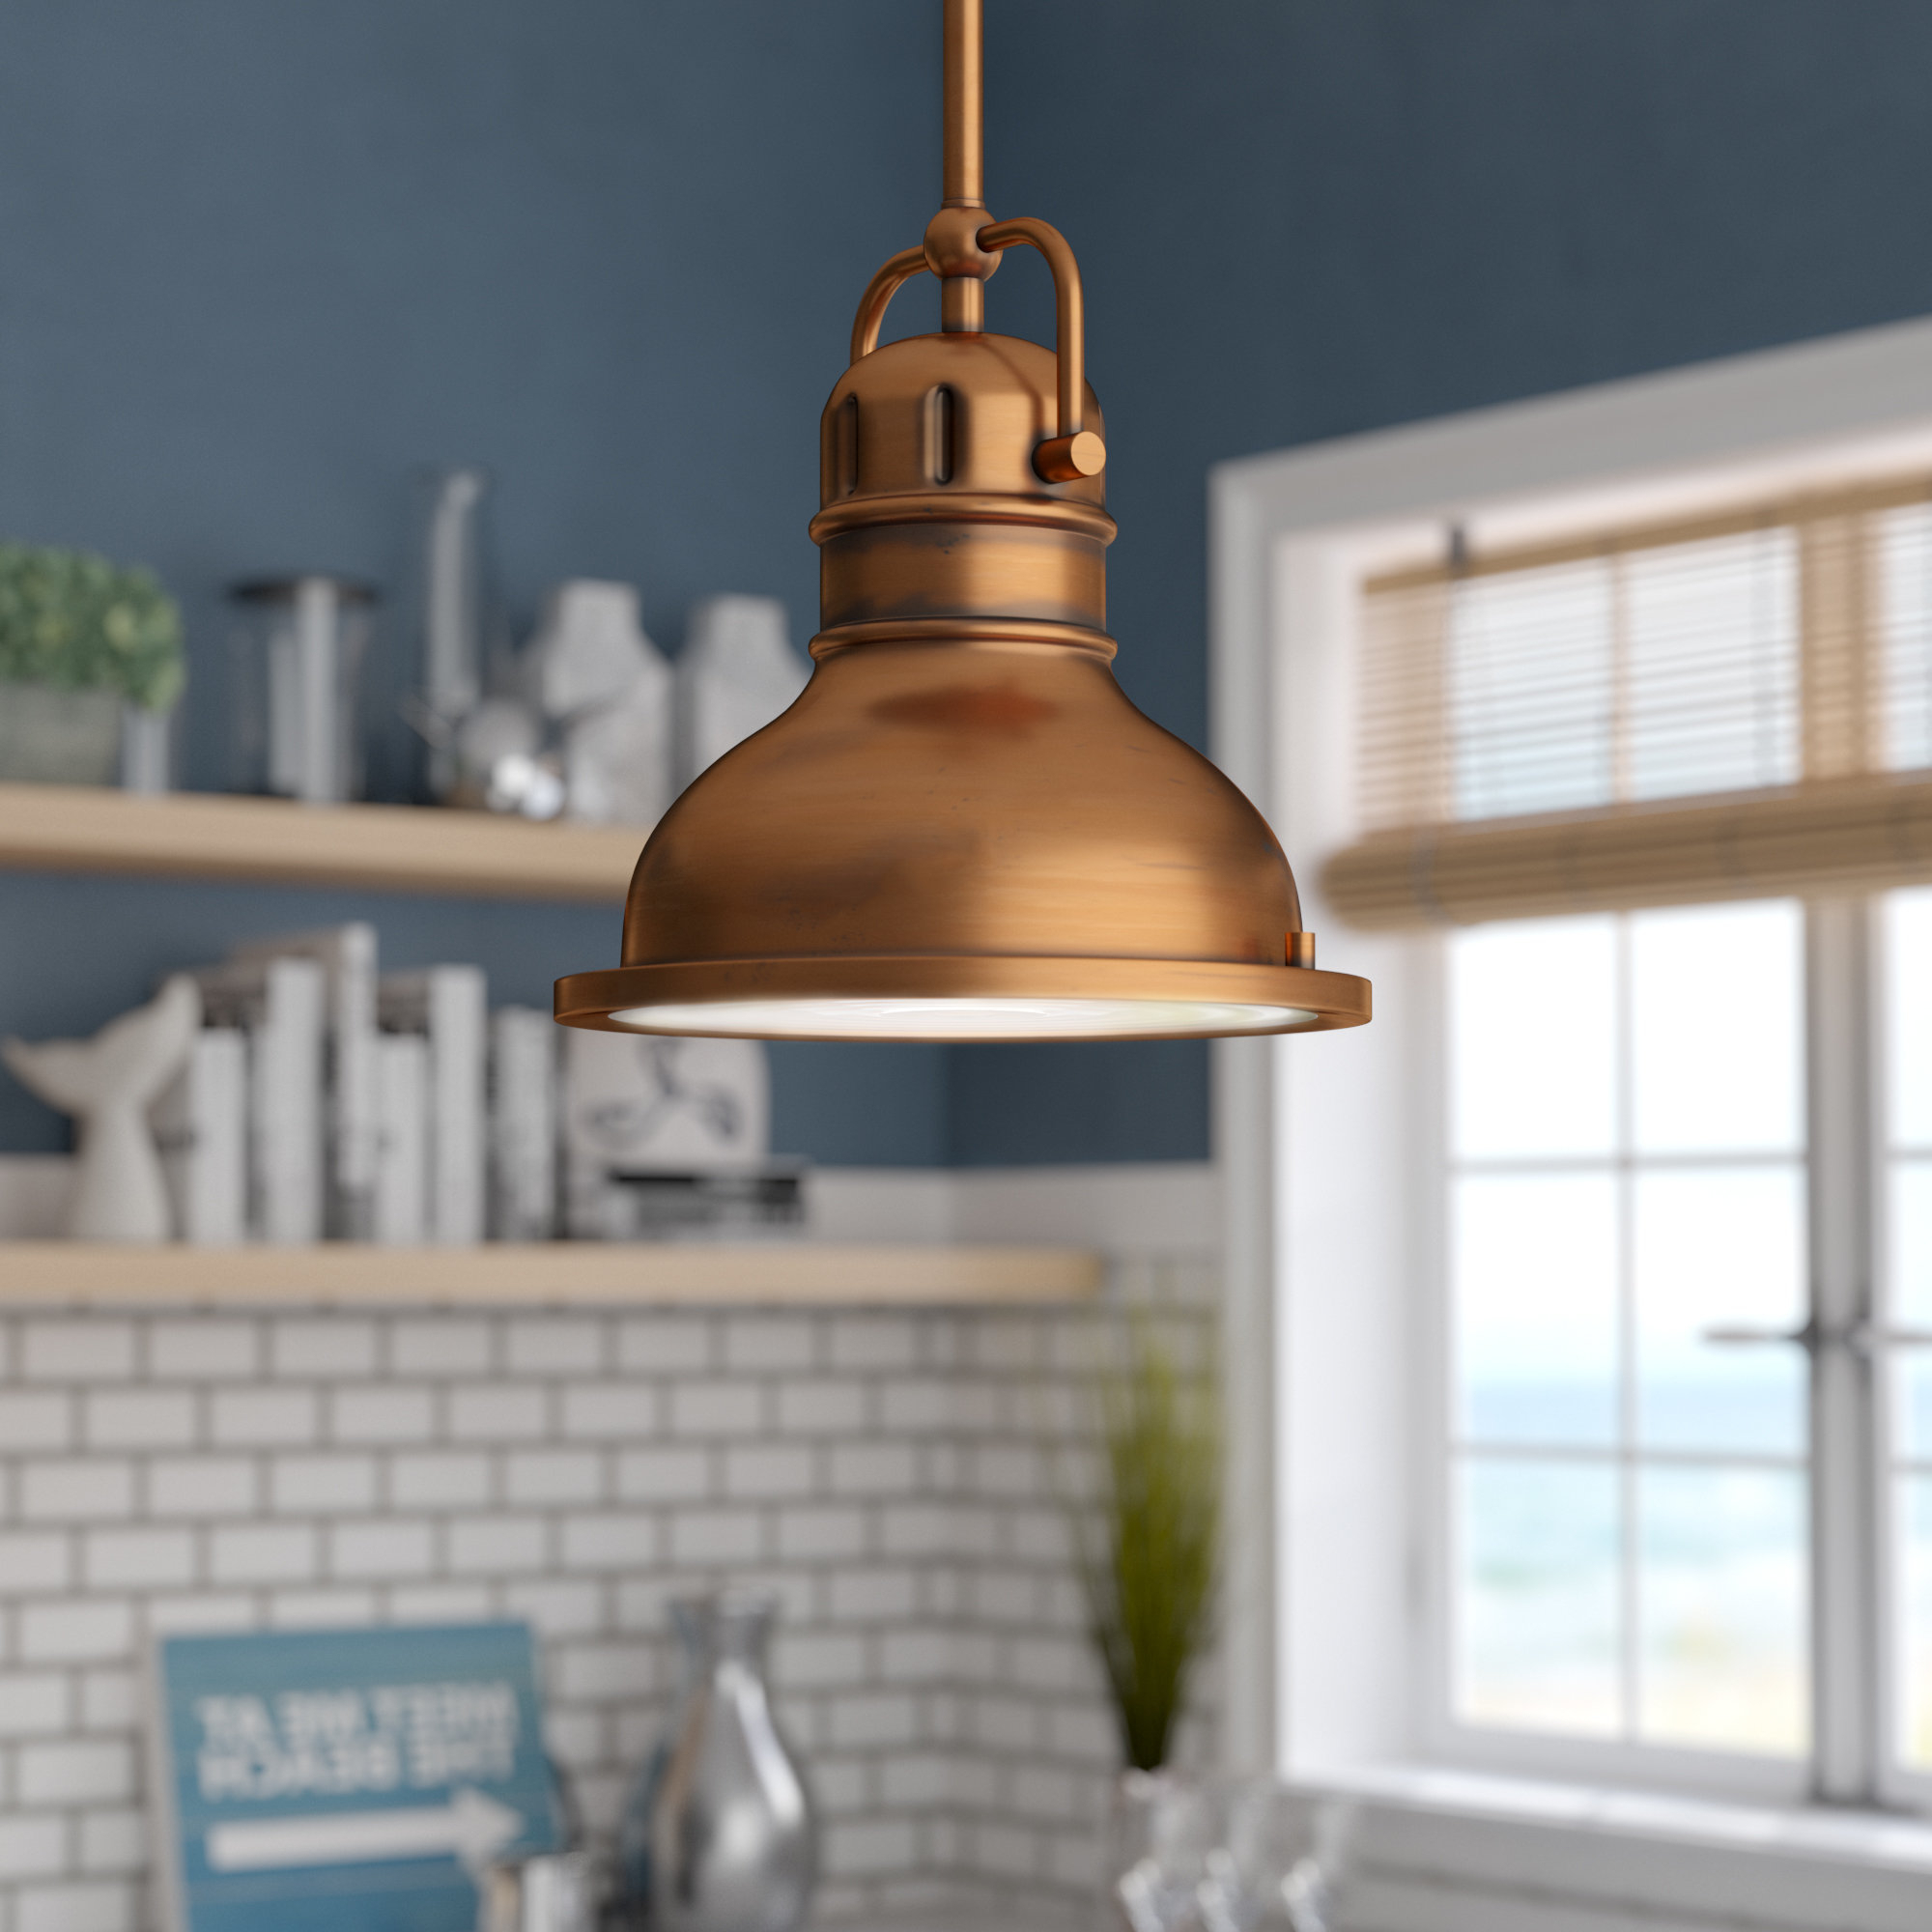 Merrick 1 Light Dome Pendant With Widely Used Mueller 1 Light Single Dome Pendants (View 24 of 25)